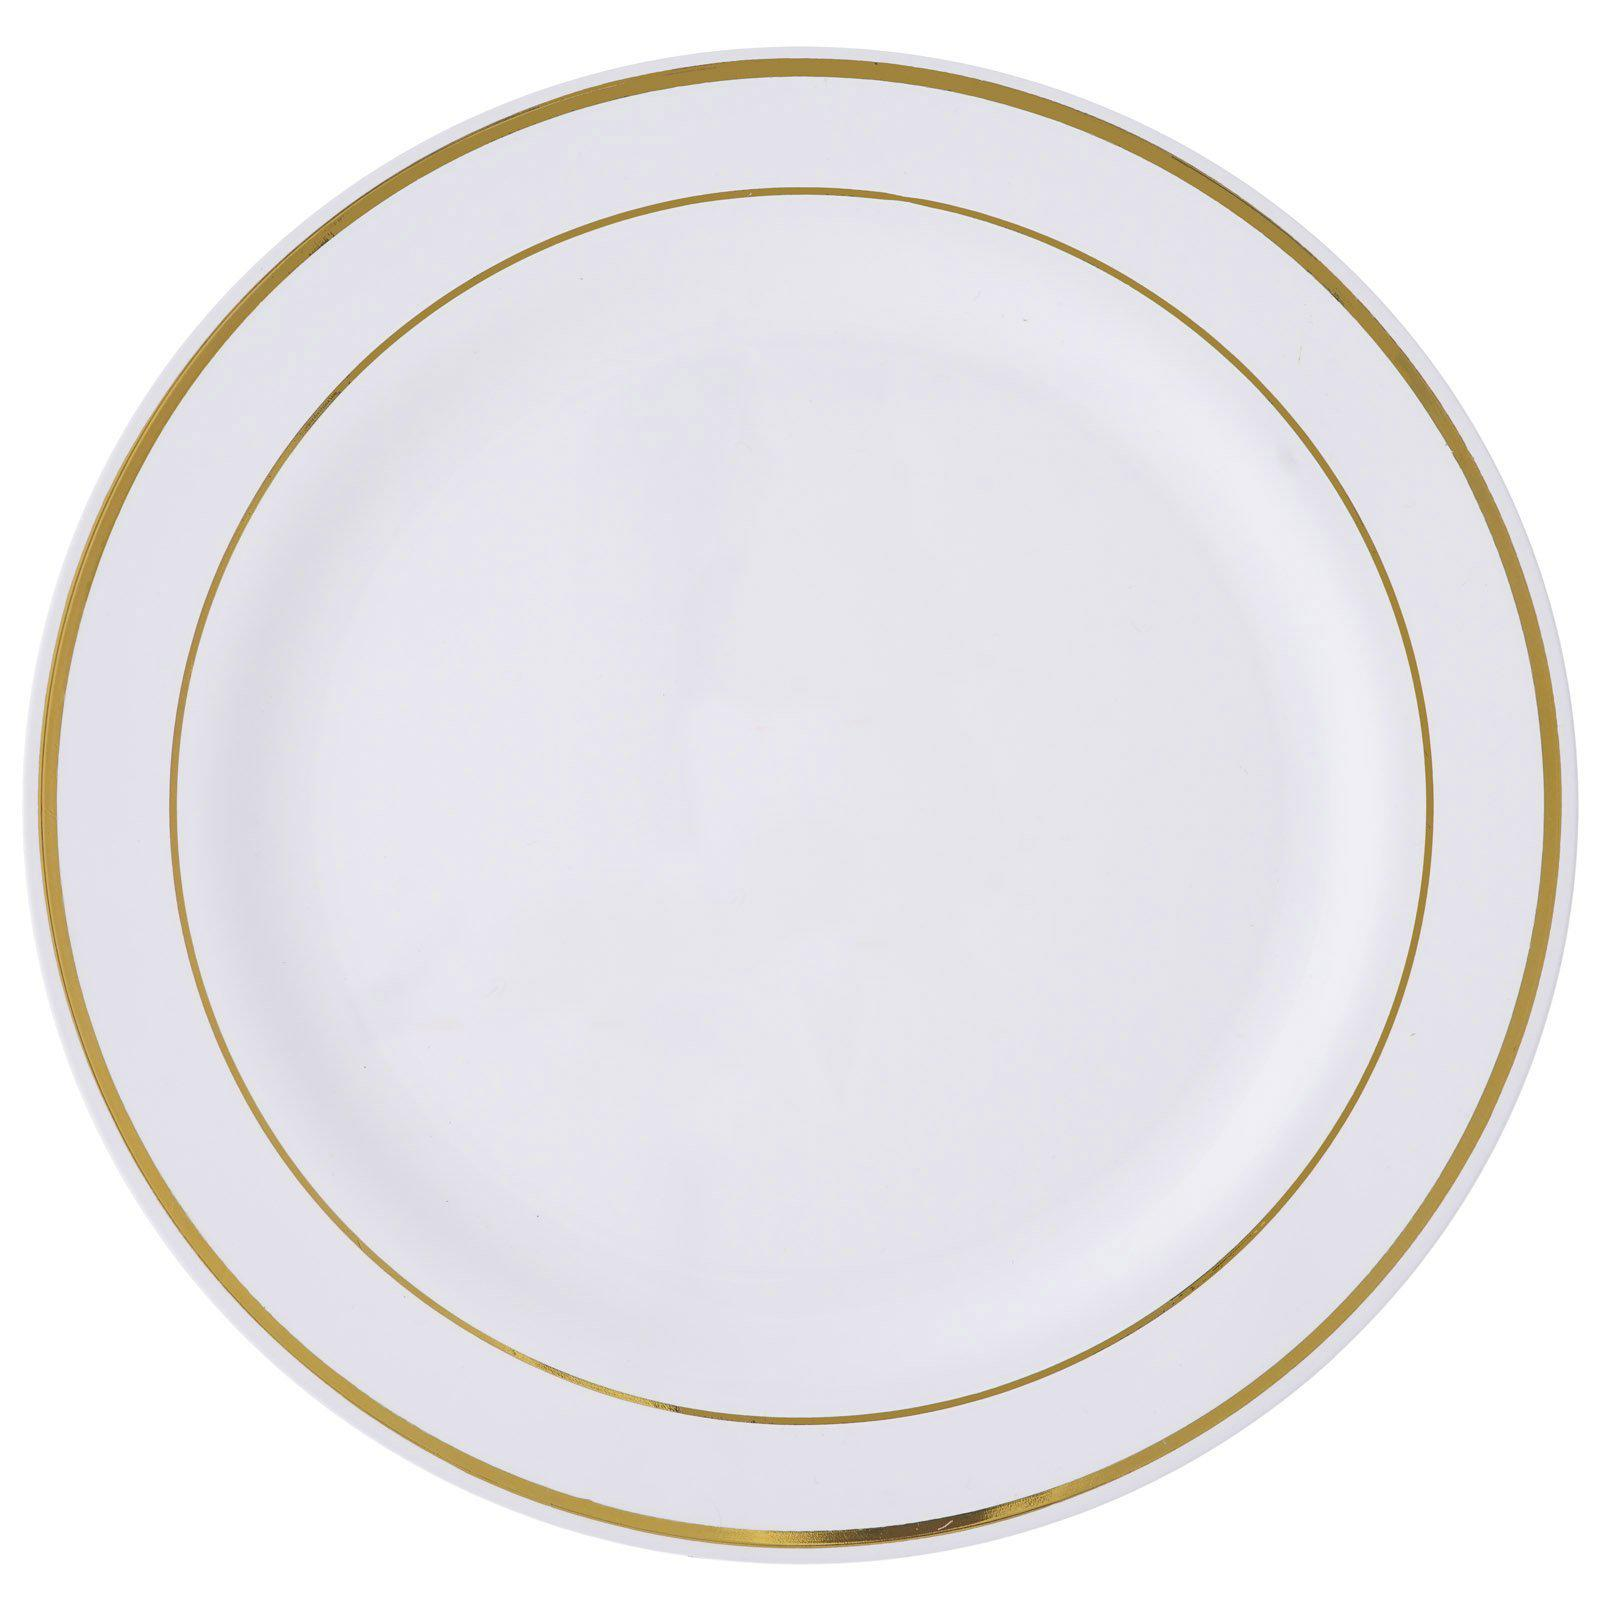 10 Pack 10\  White Disposable Round Dinner Plates With Gold Rim  sc 1 st  Tablecloths Factory & 10 Pack 10\